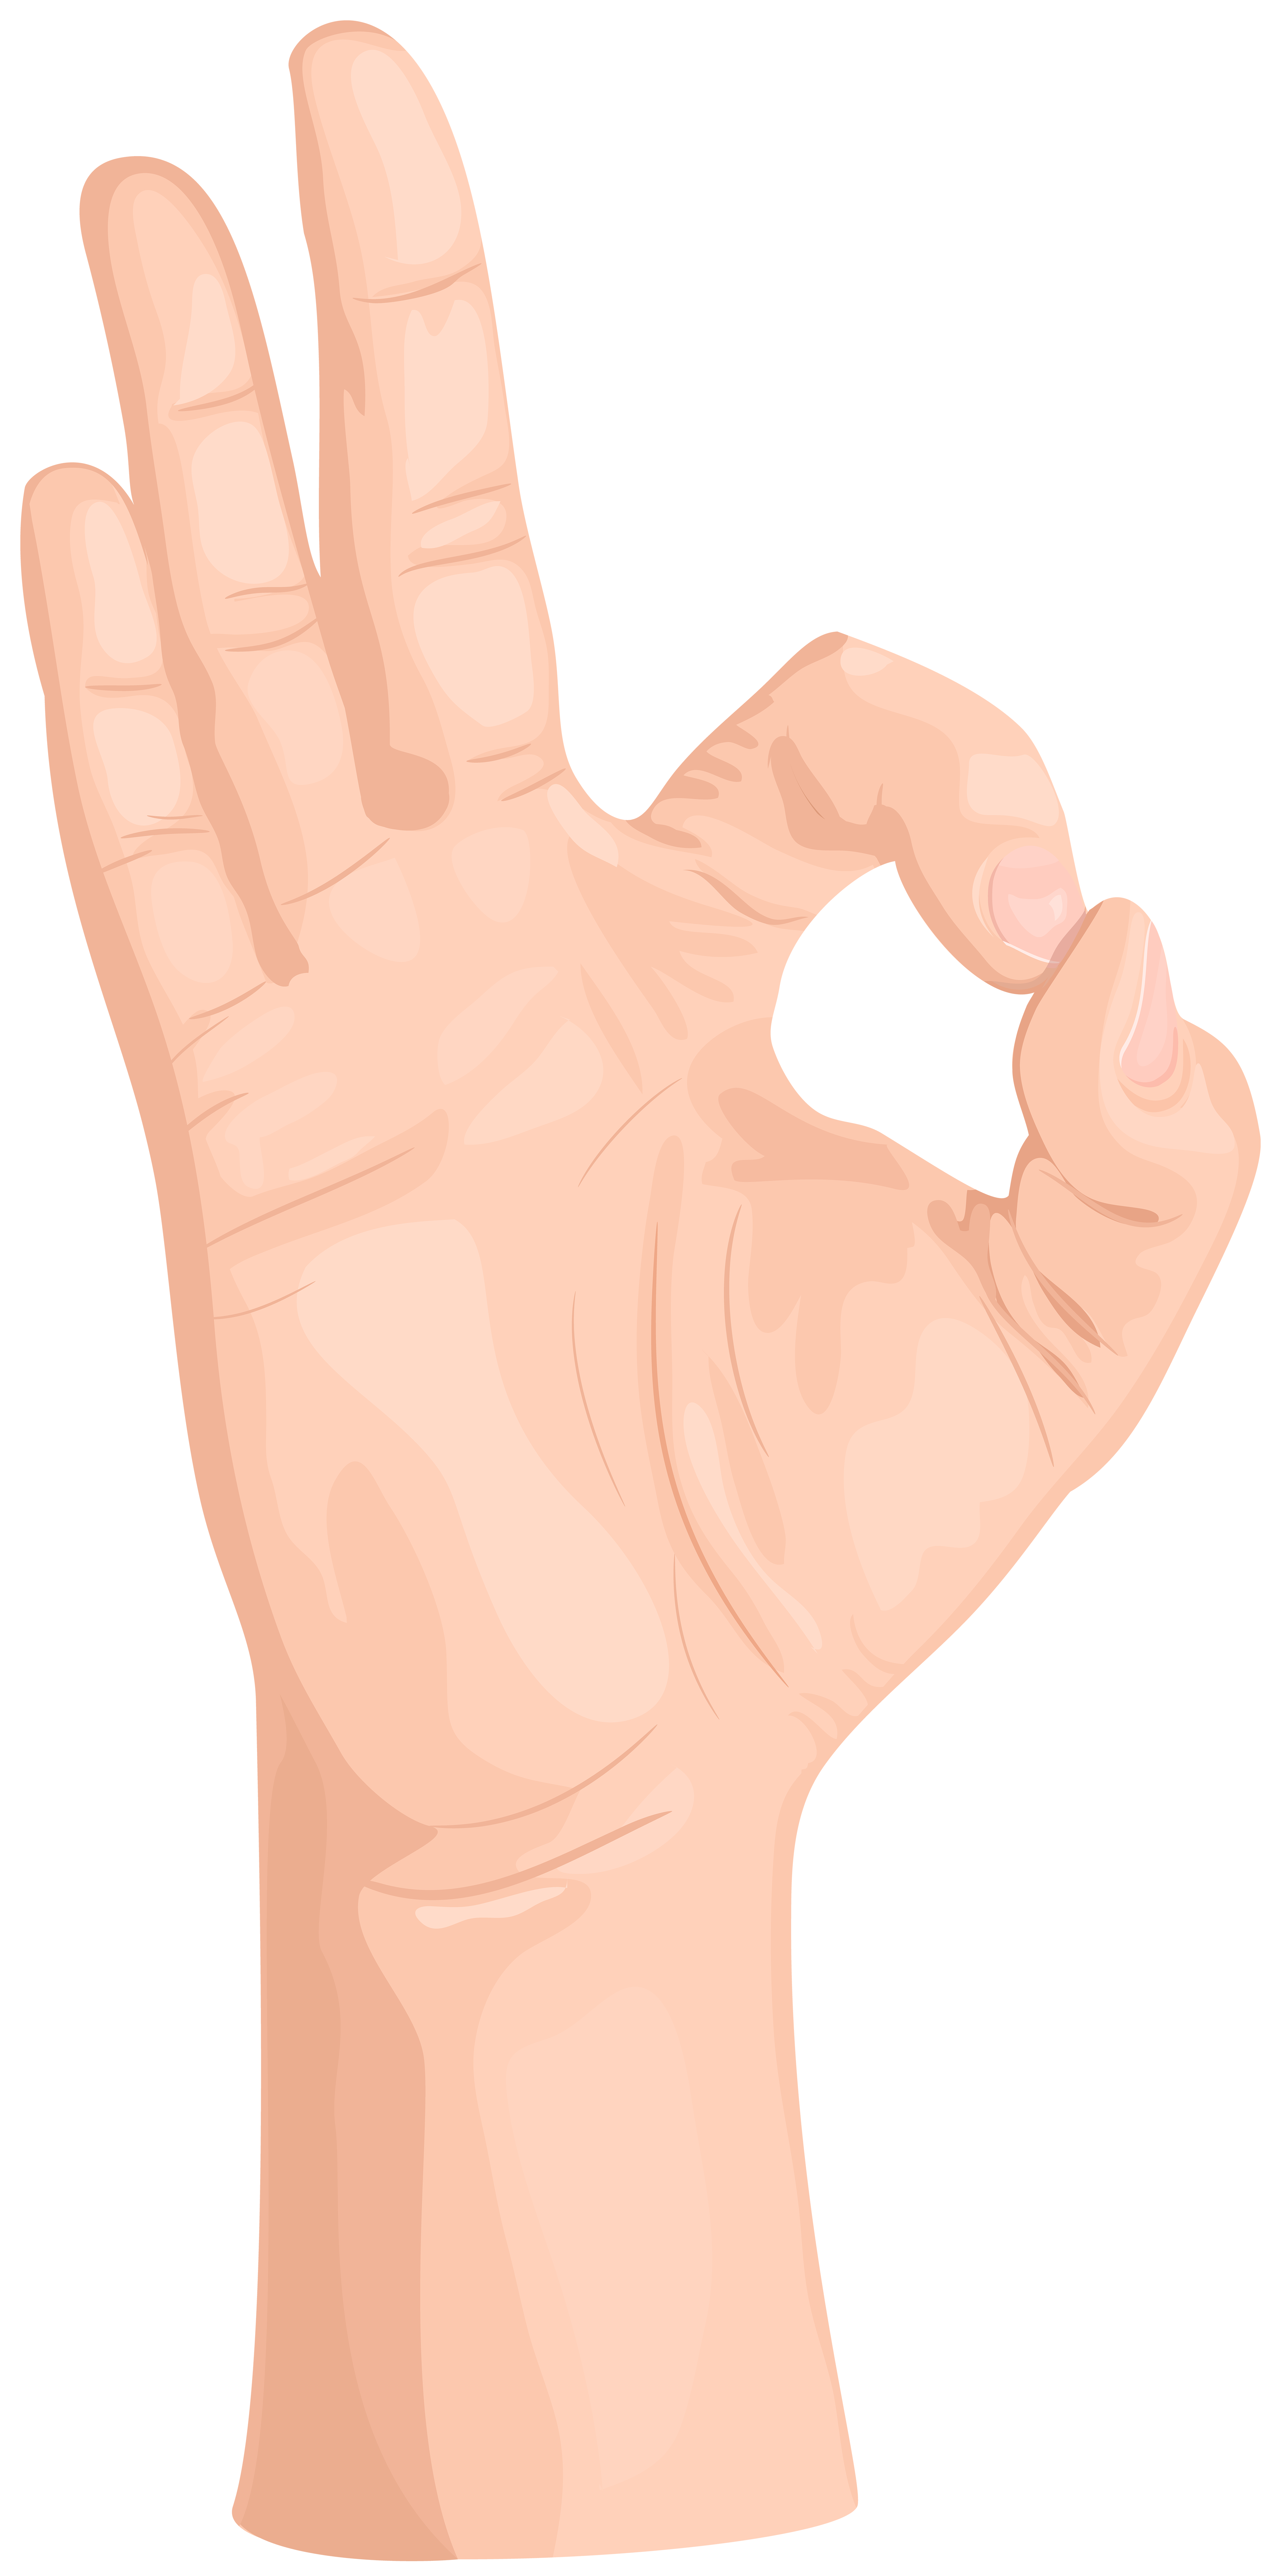 Hand clipart wrist. Ok gesture transparent png